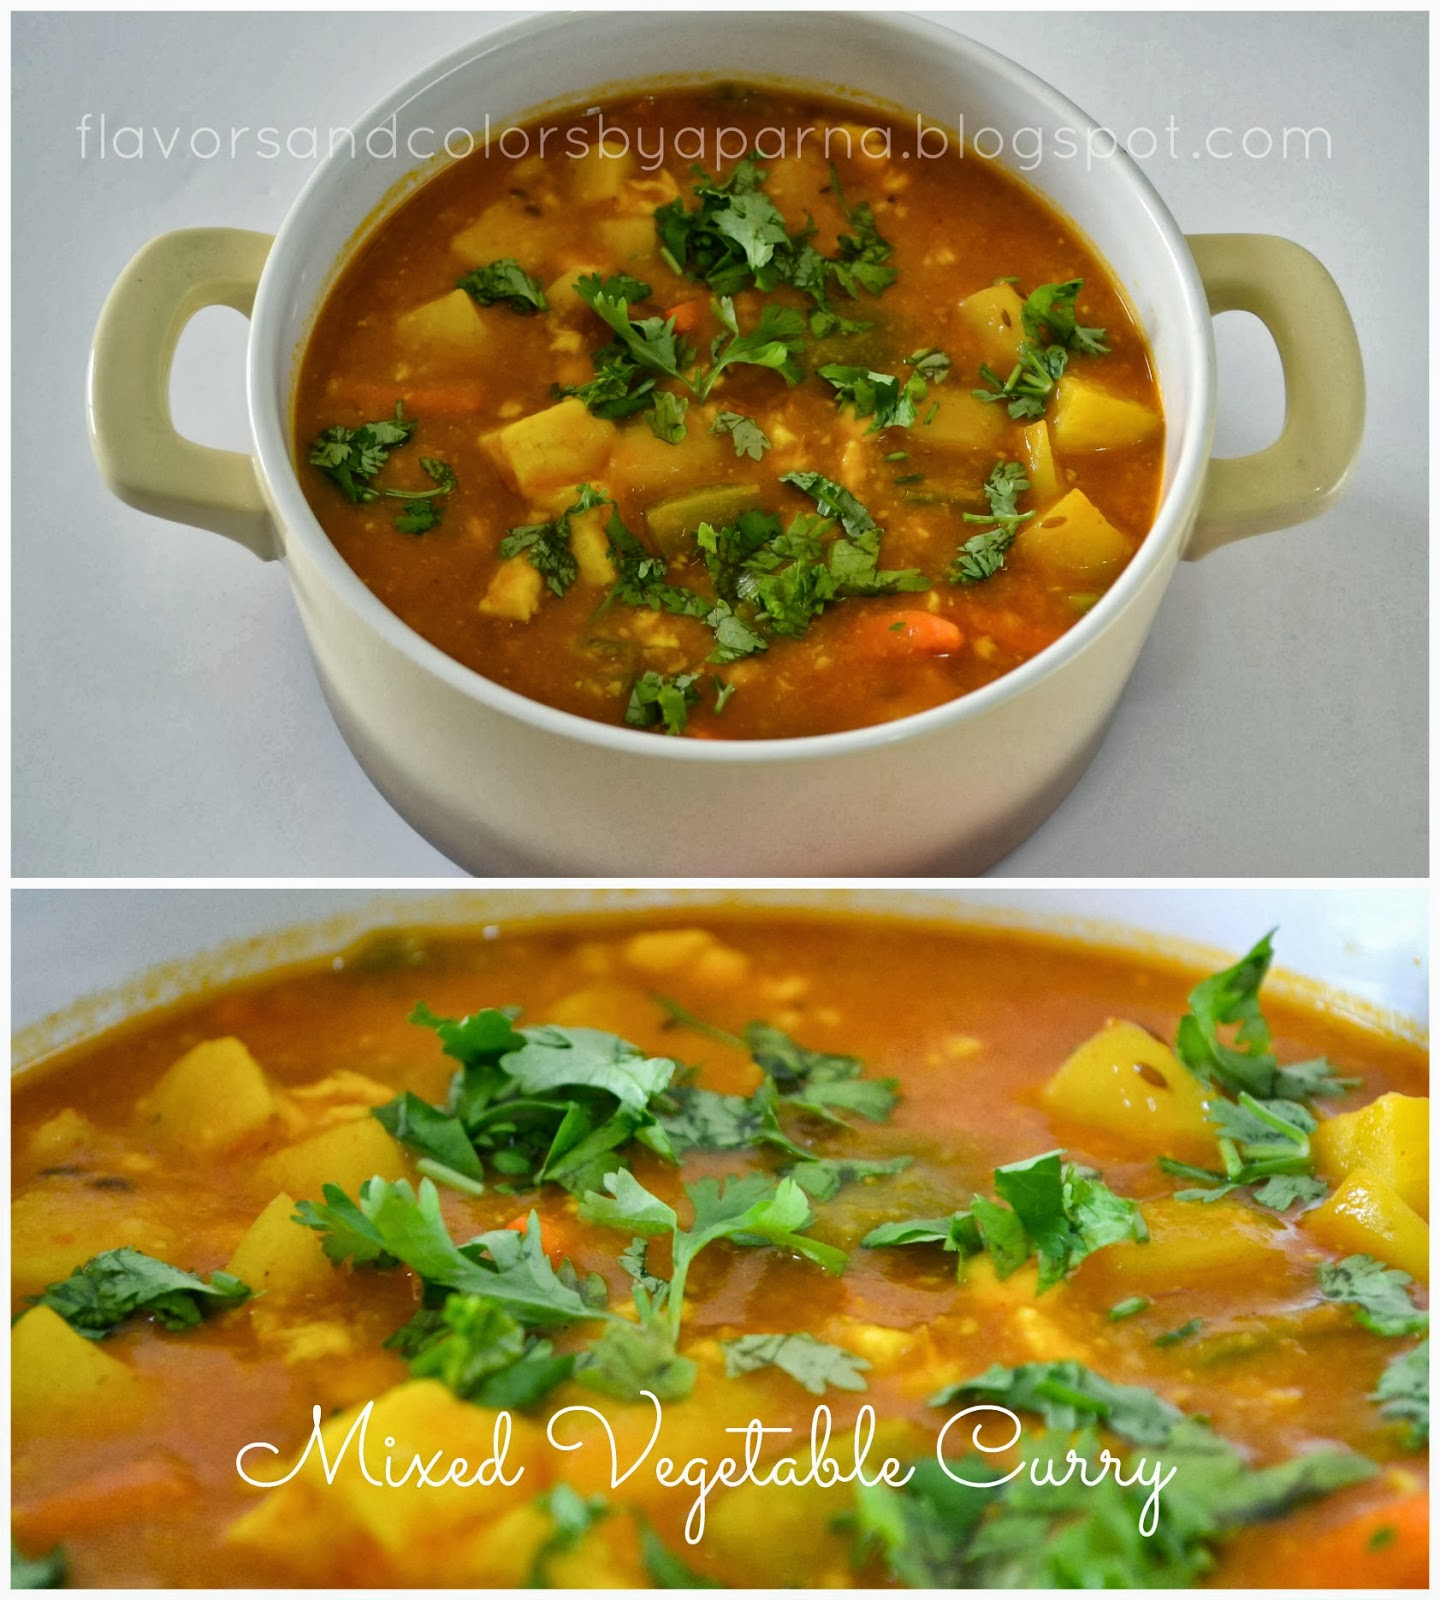 Mixed vegetable curry no onion garlic recipe flavors n colors mixed vegetable curry no onion garlic recipe forumfinder Images